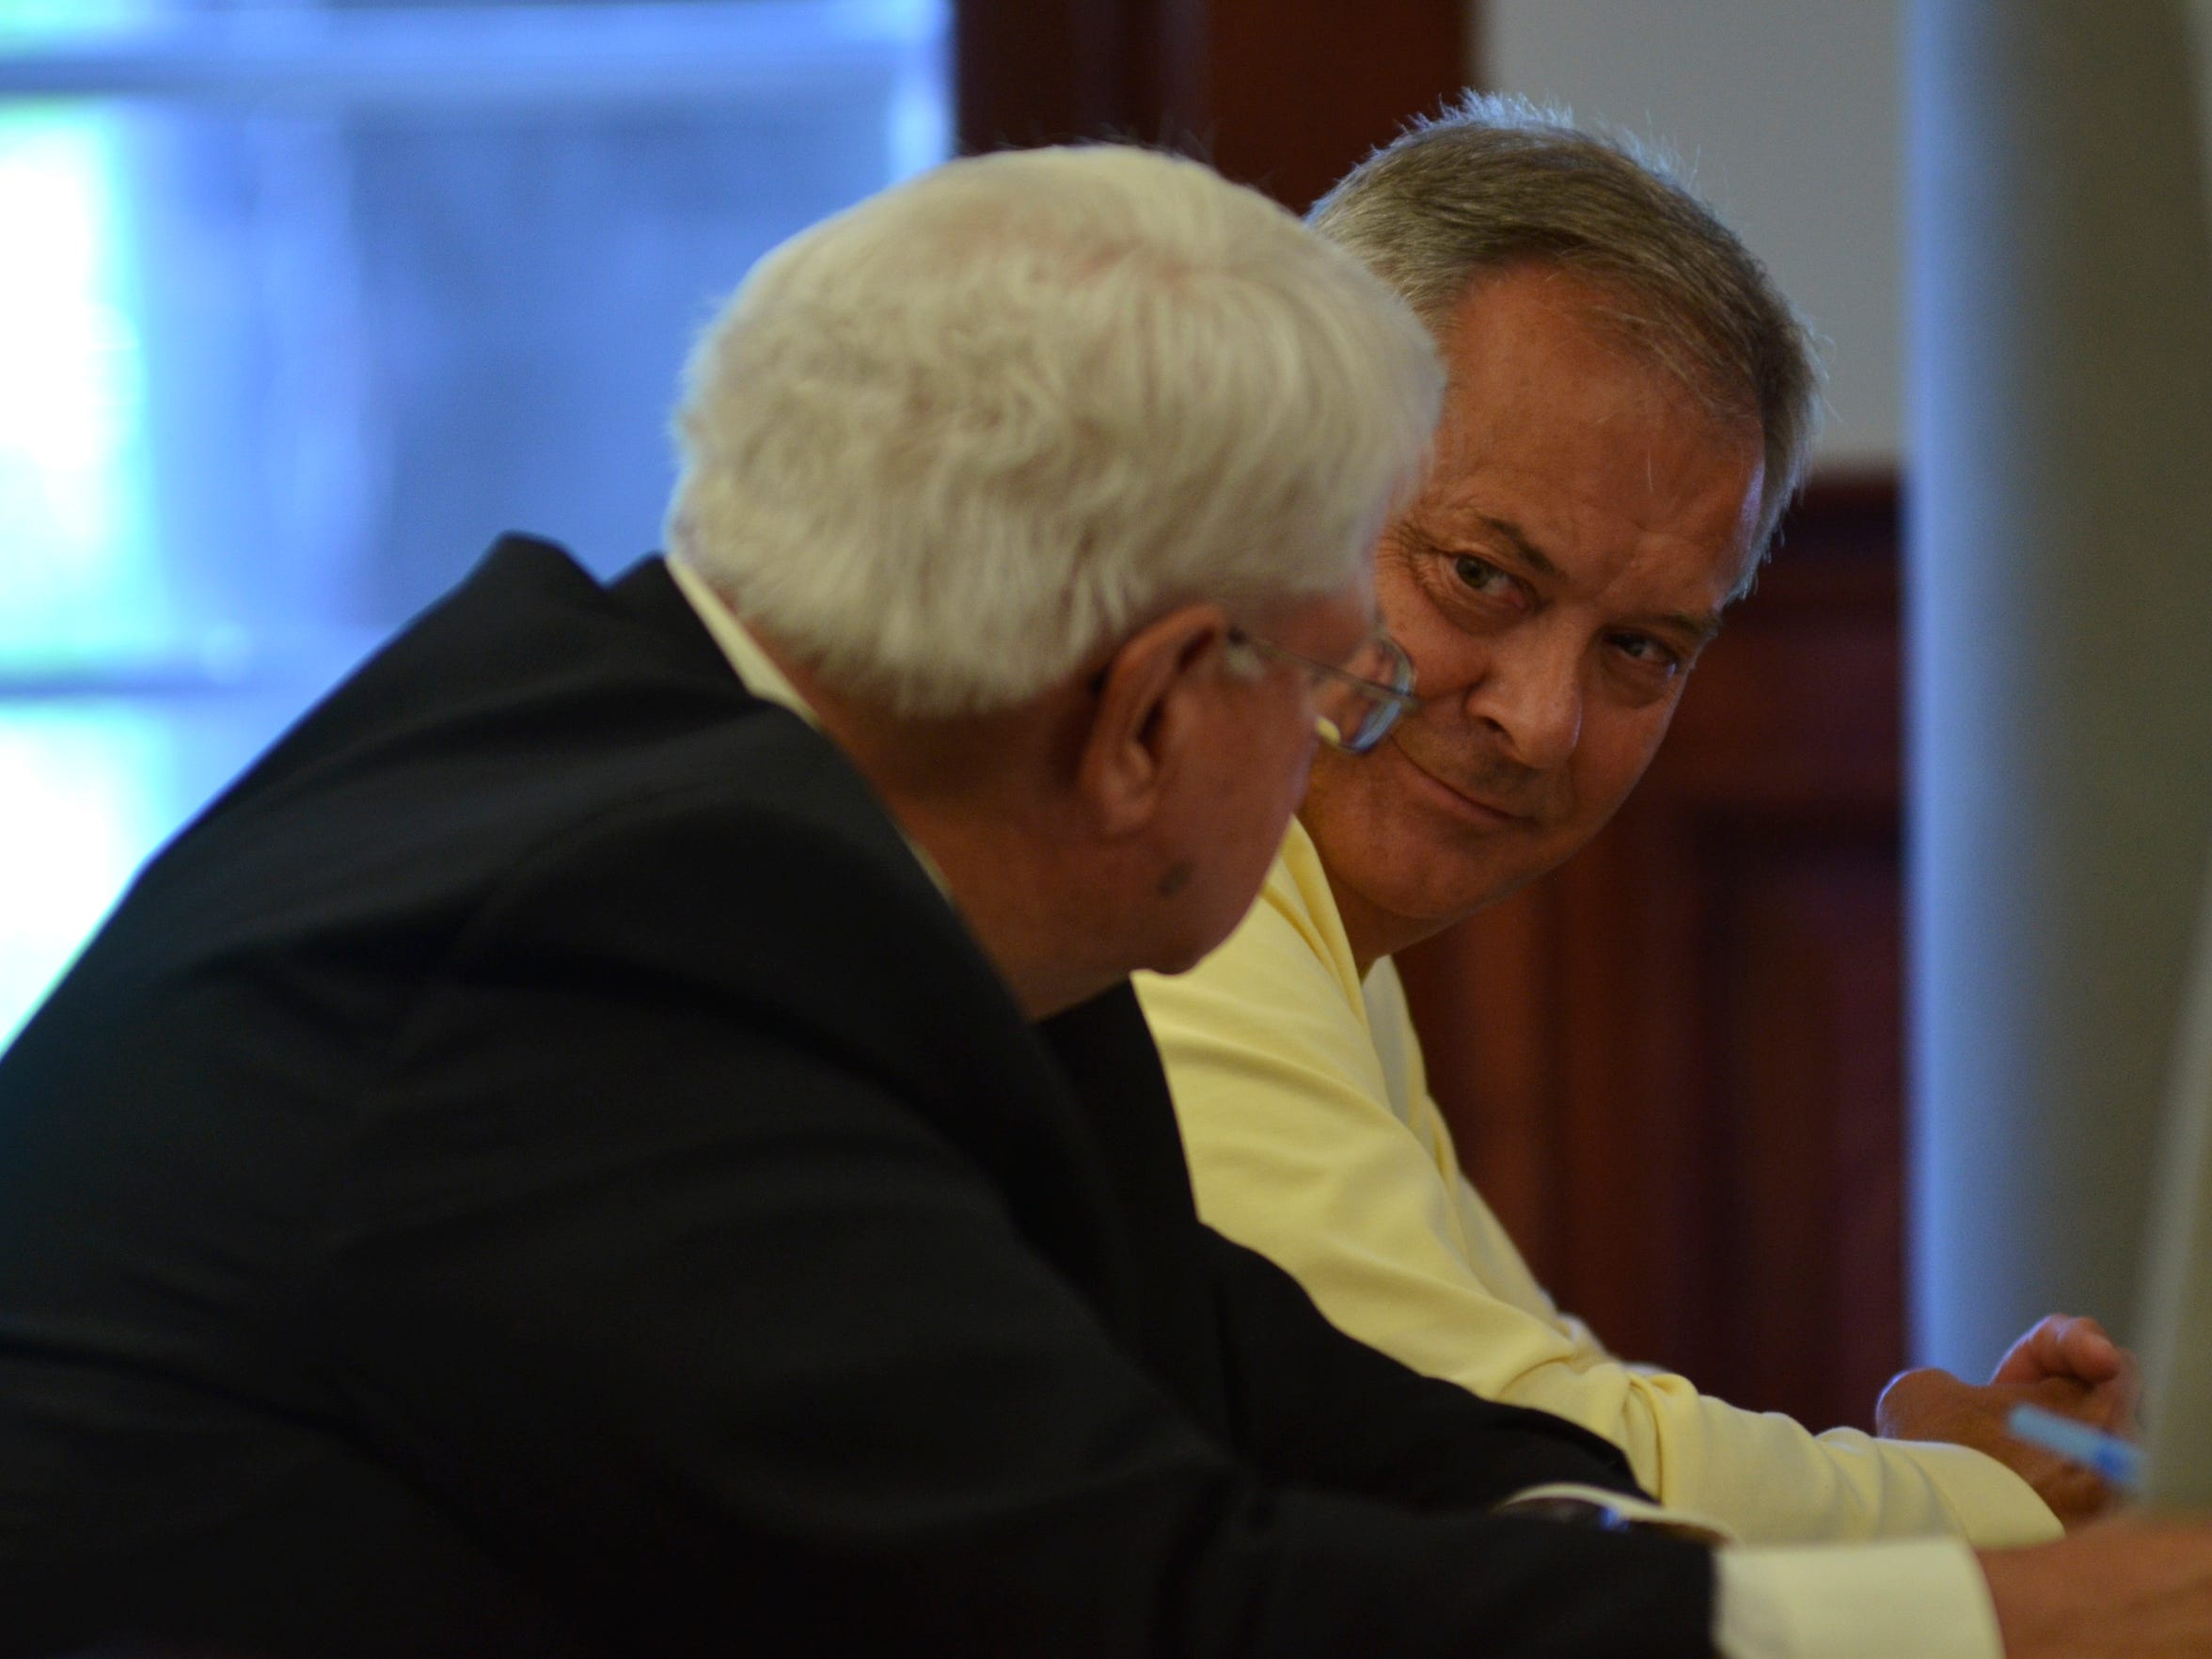 Ken Hatzenbeller looks at his attorney Ken Olson in response to a statement from prosecuting attorney Barbara Harris, of the state auditor's office.